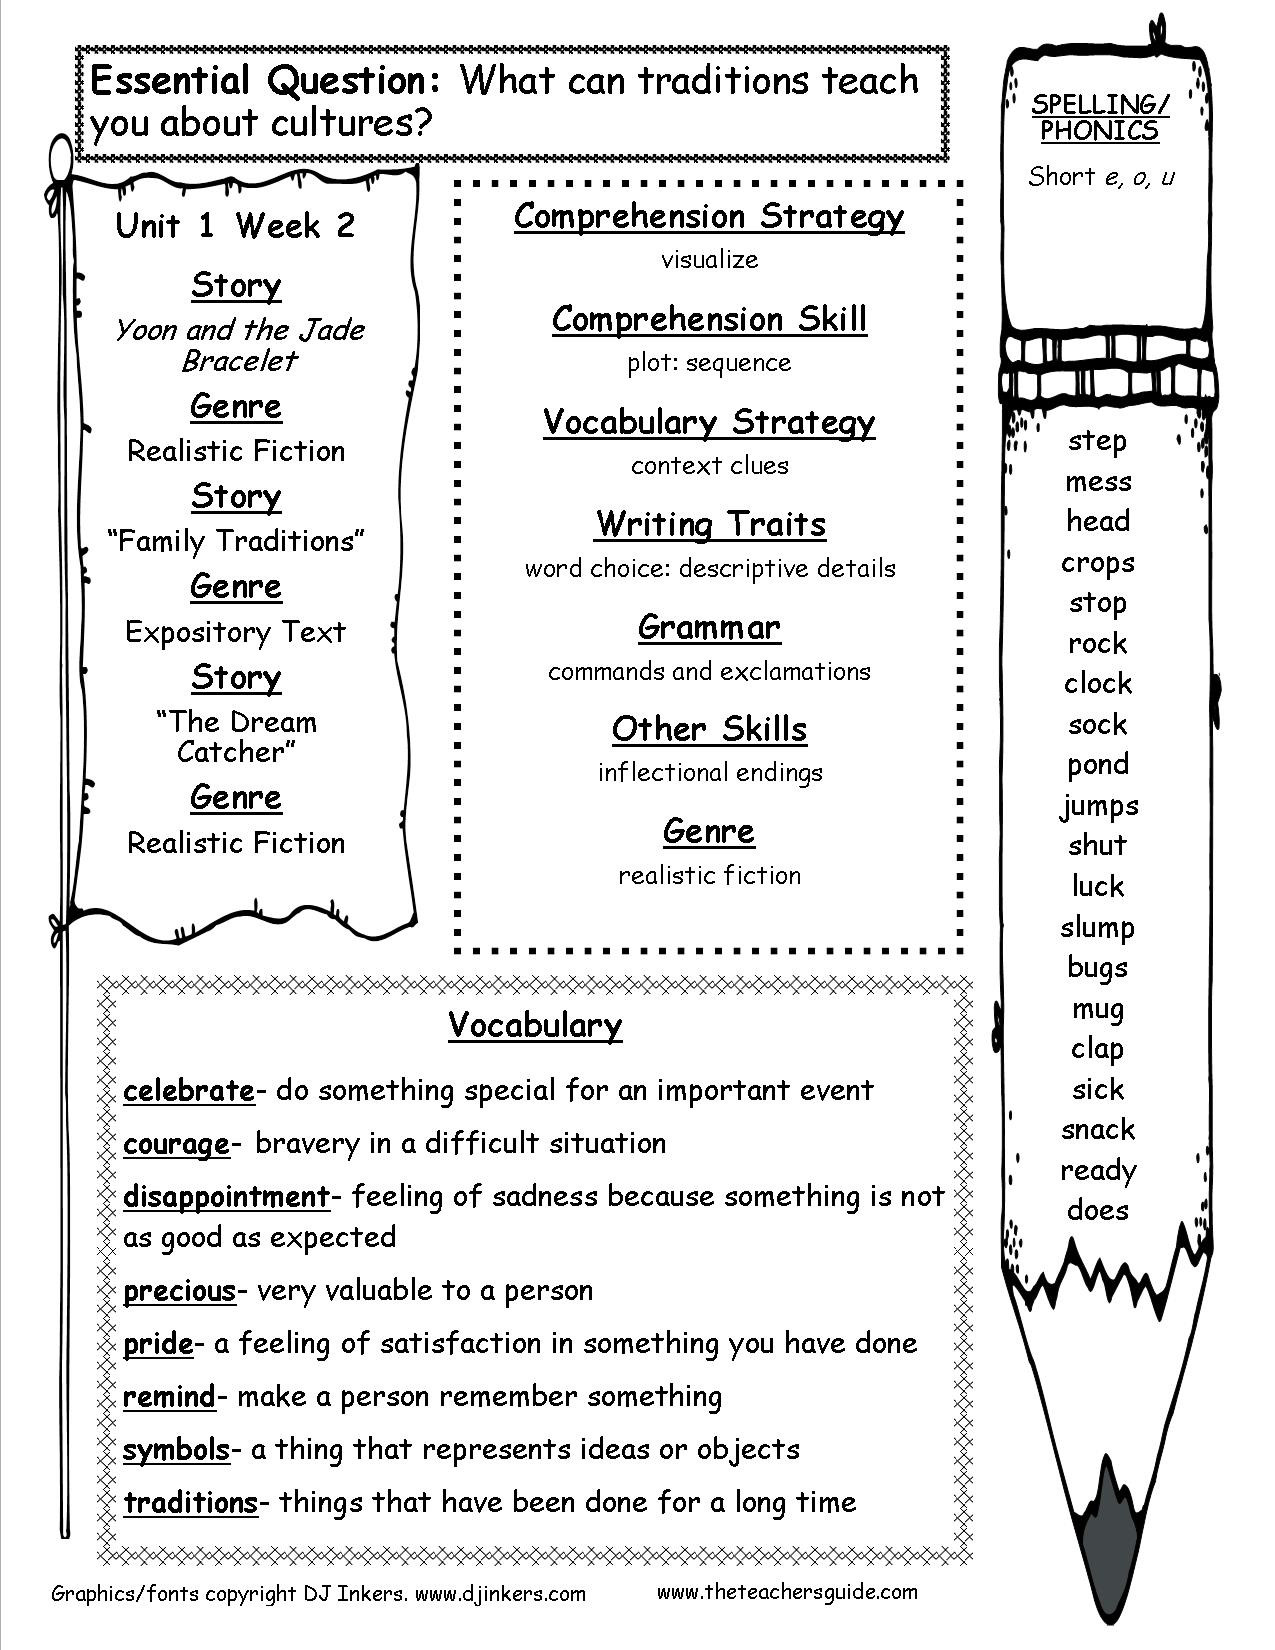 Inflected Endings Worksheets 2nd Grade Mcgraw Wonders Third Grade Resources and Printouts 3rd